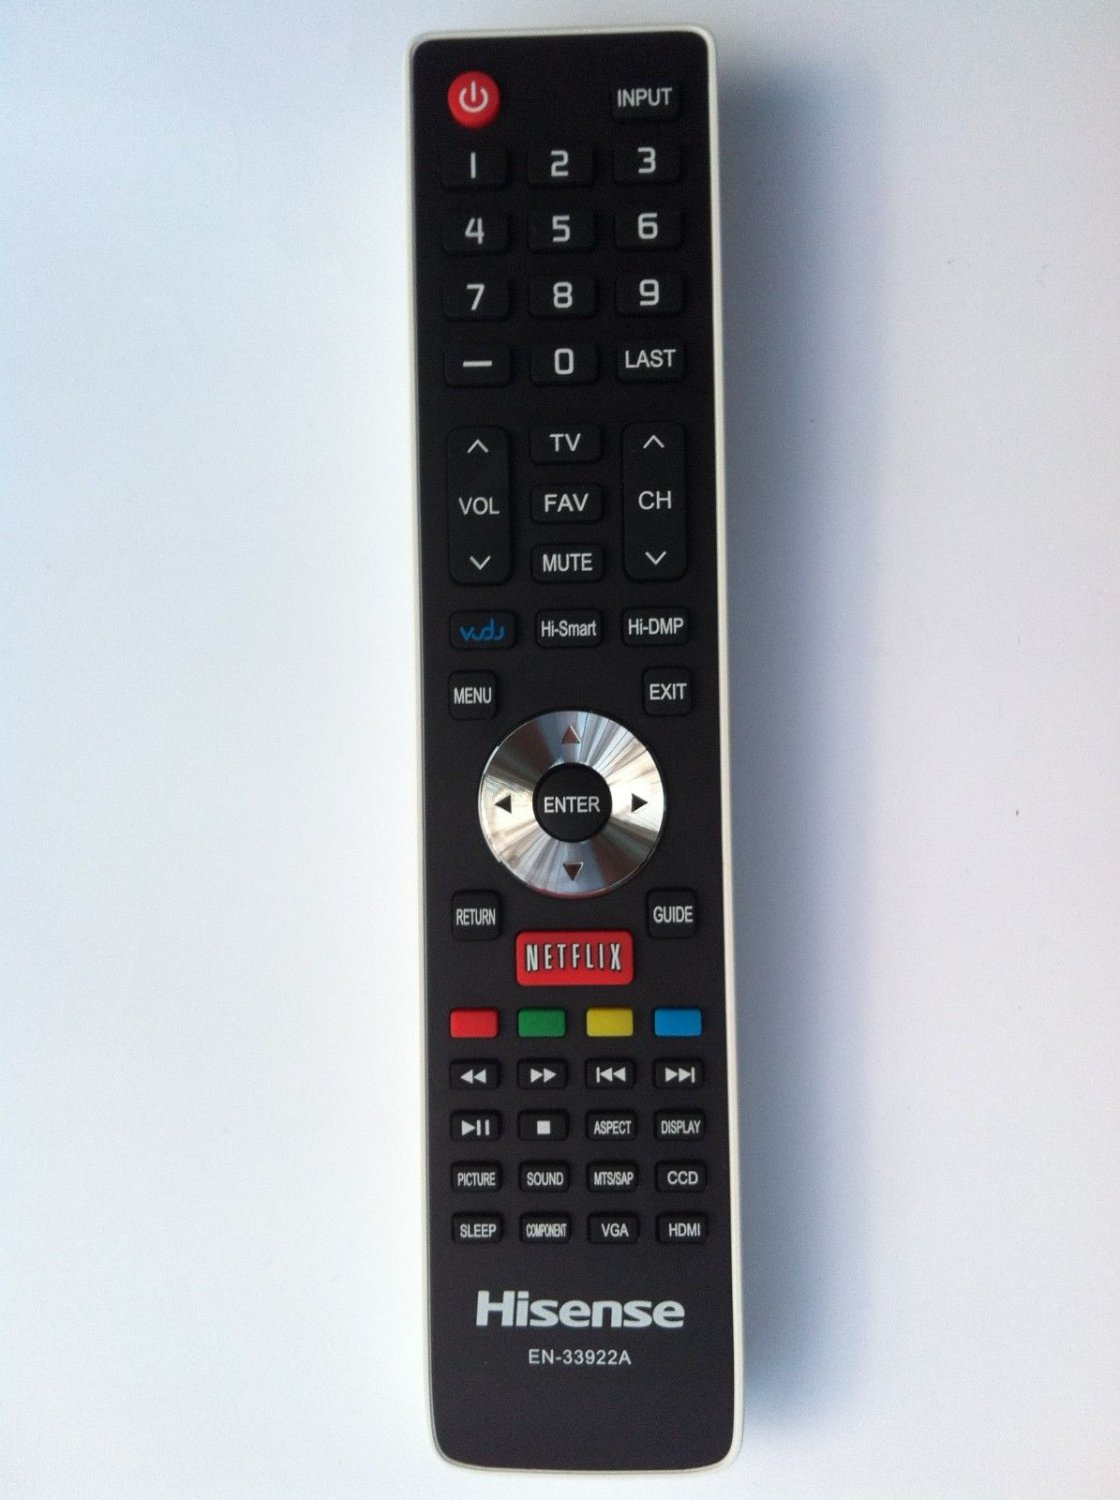 NEW Hisense Smart TV REMOTE EN-33922A for 32K366WUS 40K366NW 40K366WUS 50K366GW